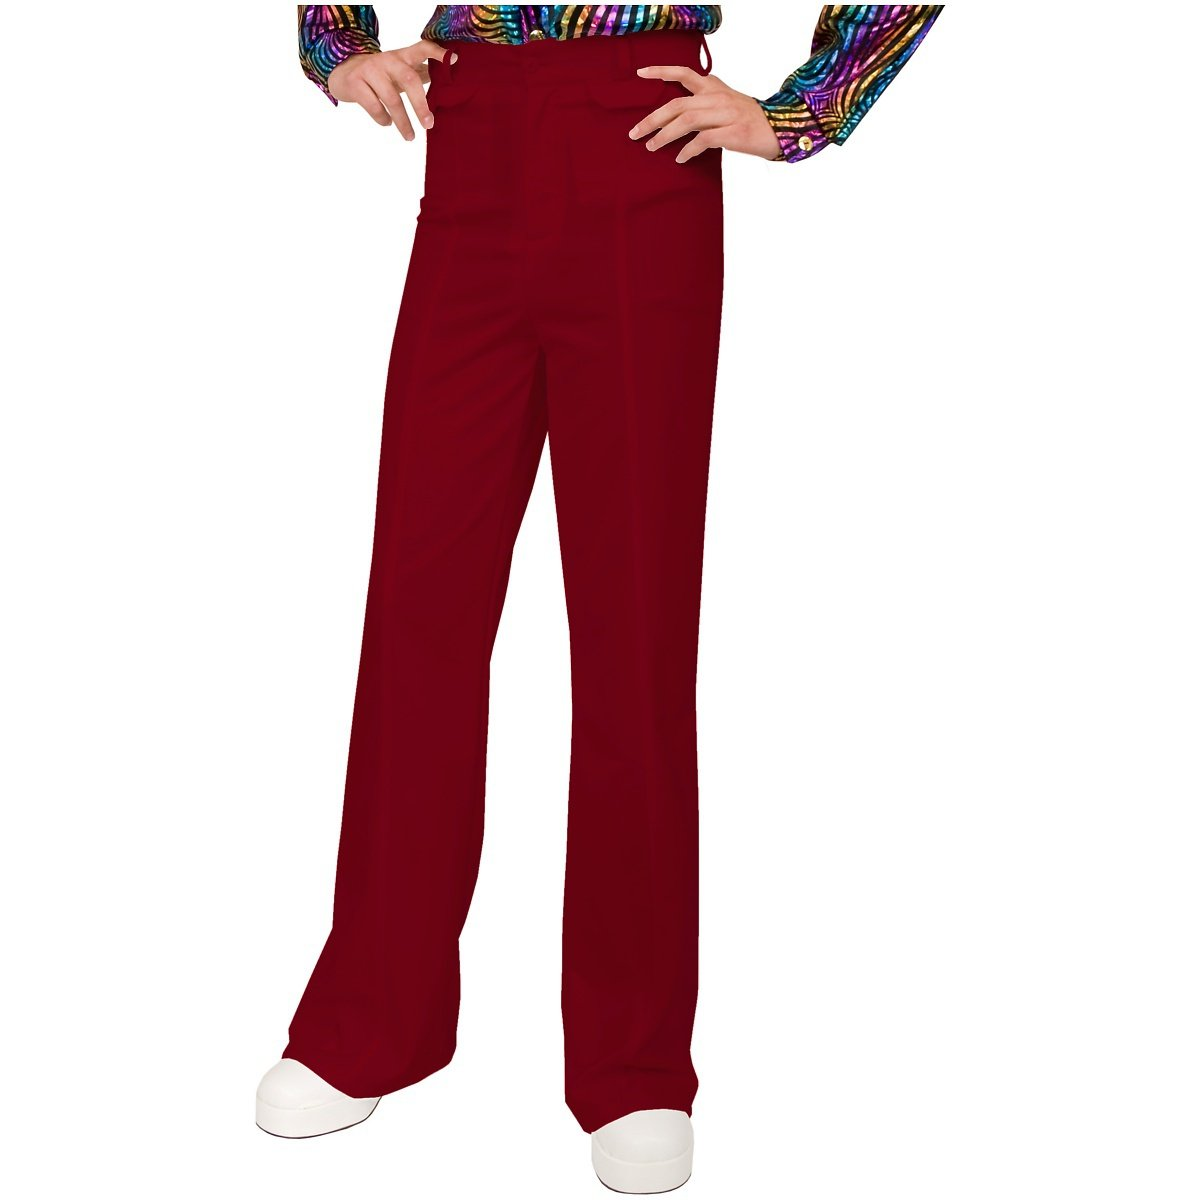 Charades Men's Disco Pants, red, 42